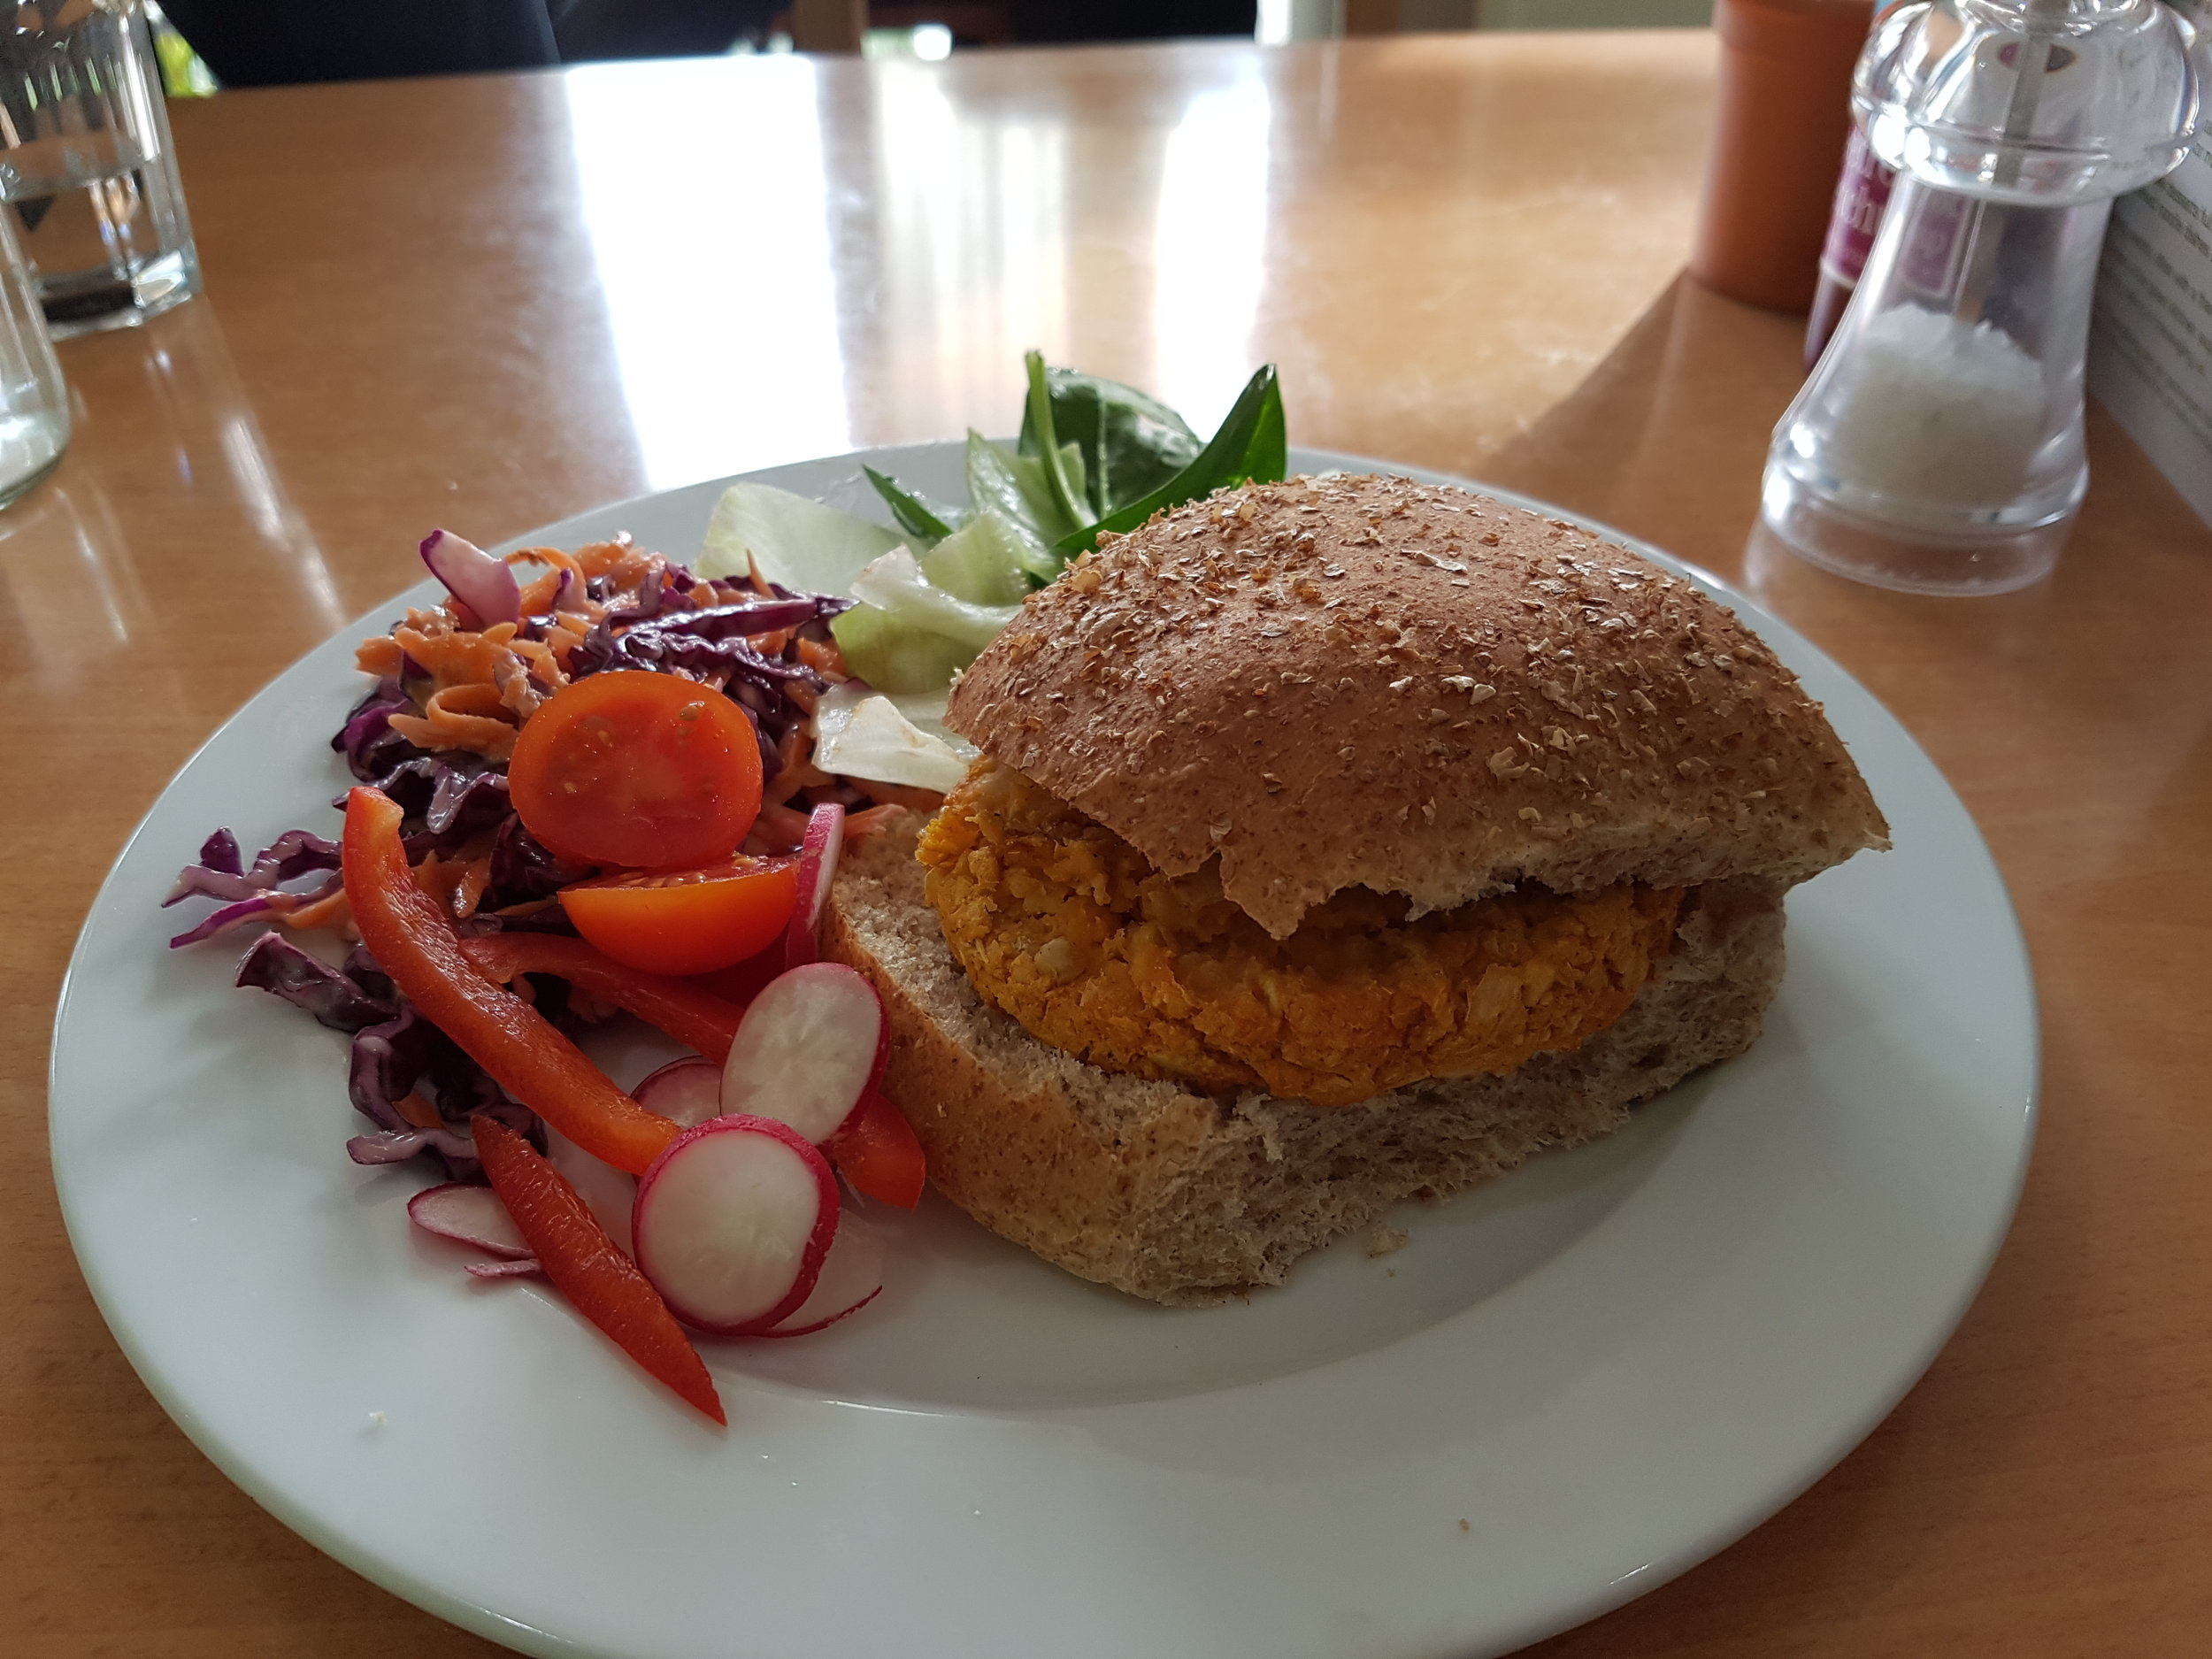 The Green Kitchen in St Albans